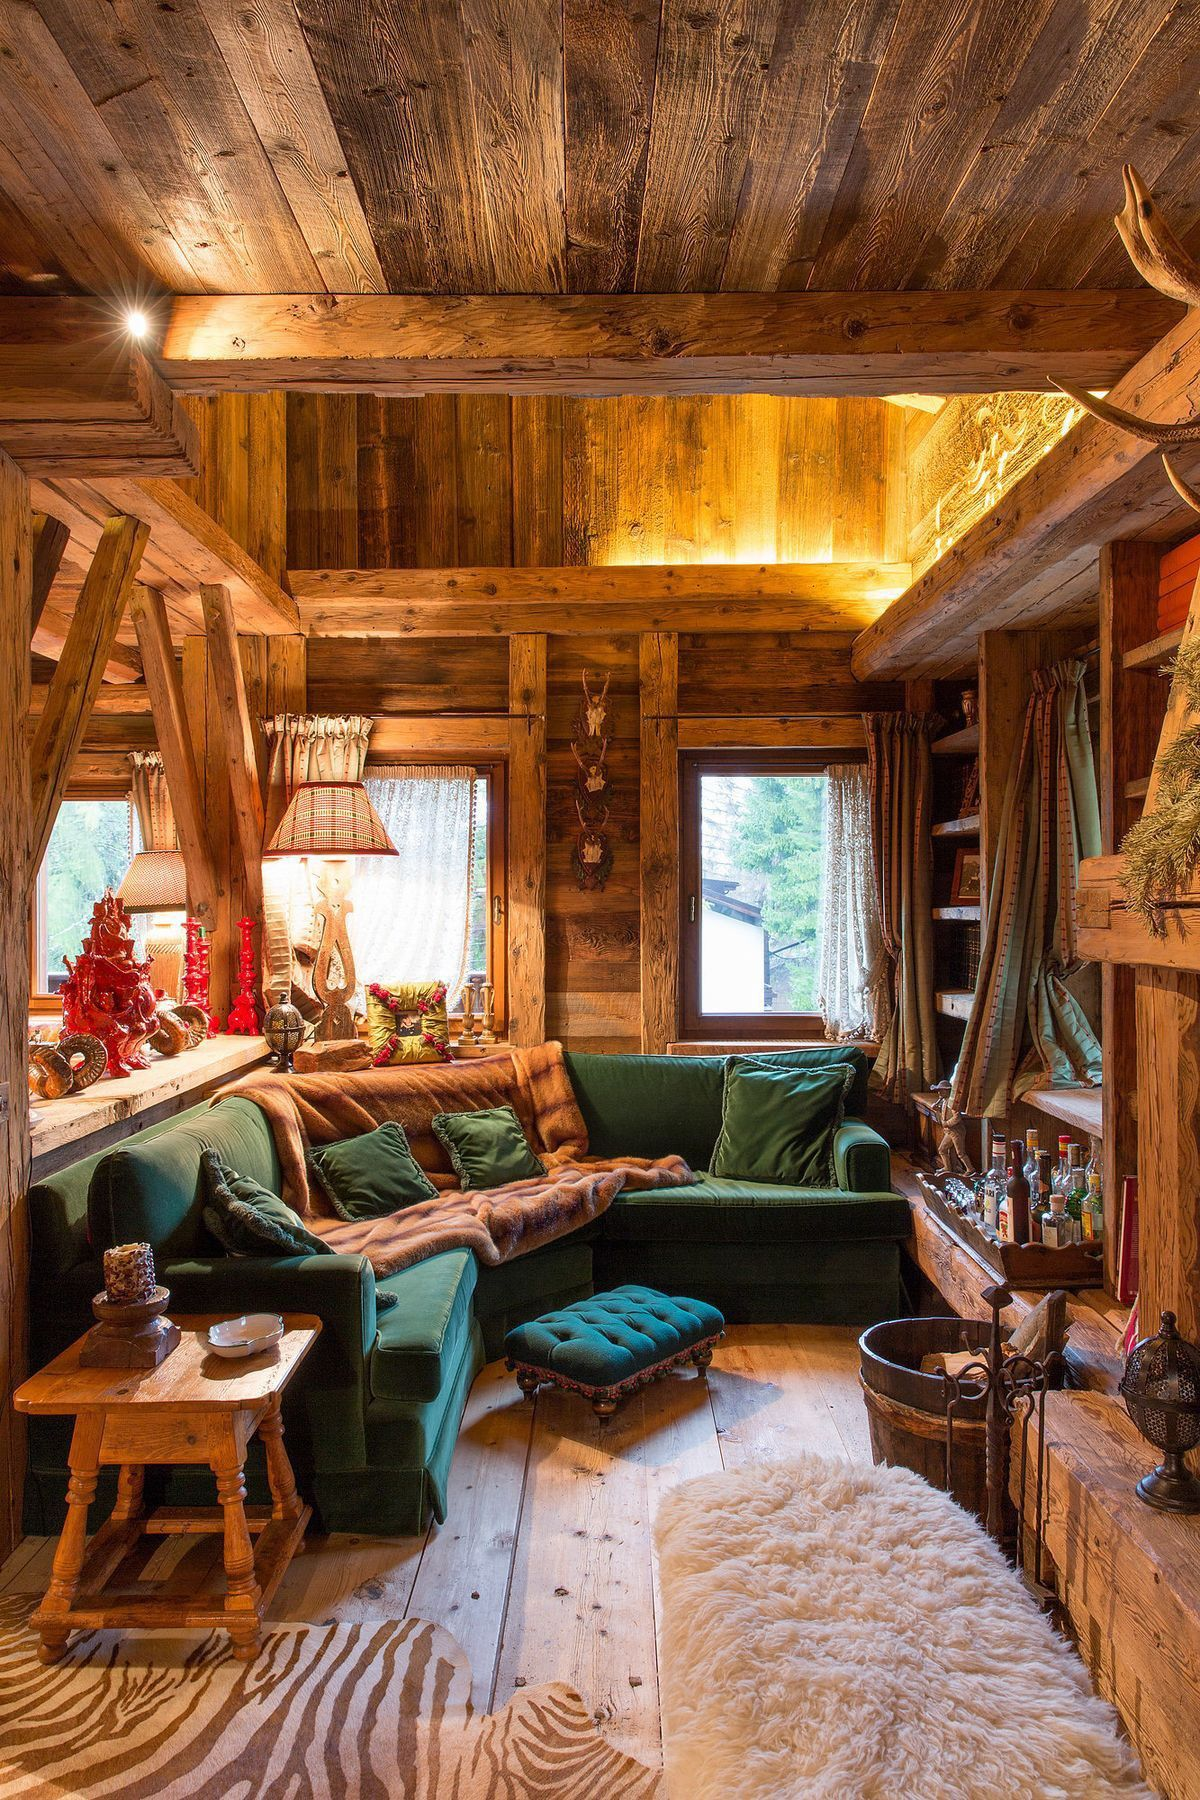 Awesome Sectional In This Tiny Living Room Cabin Interiors Cabin Living Tiny Living Rooms #small #cabin #living #room